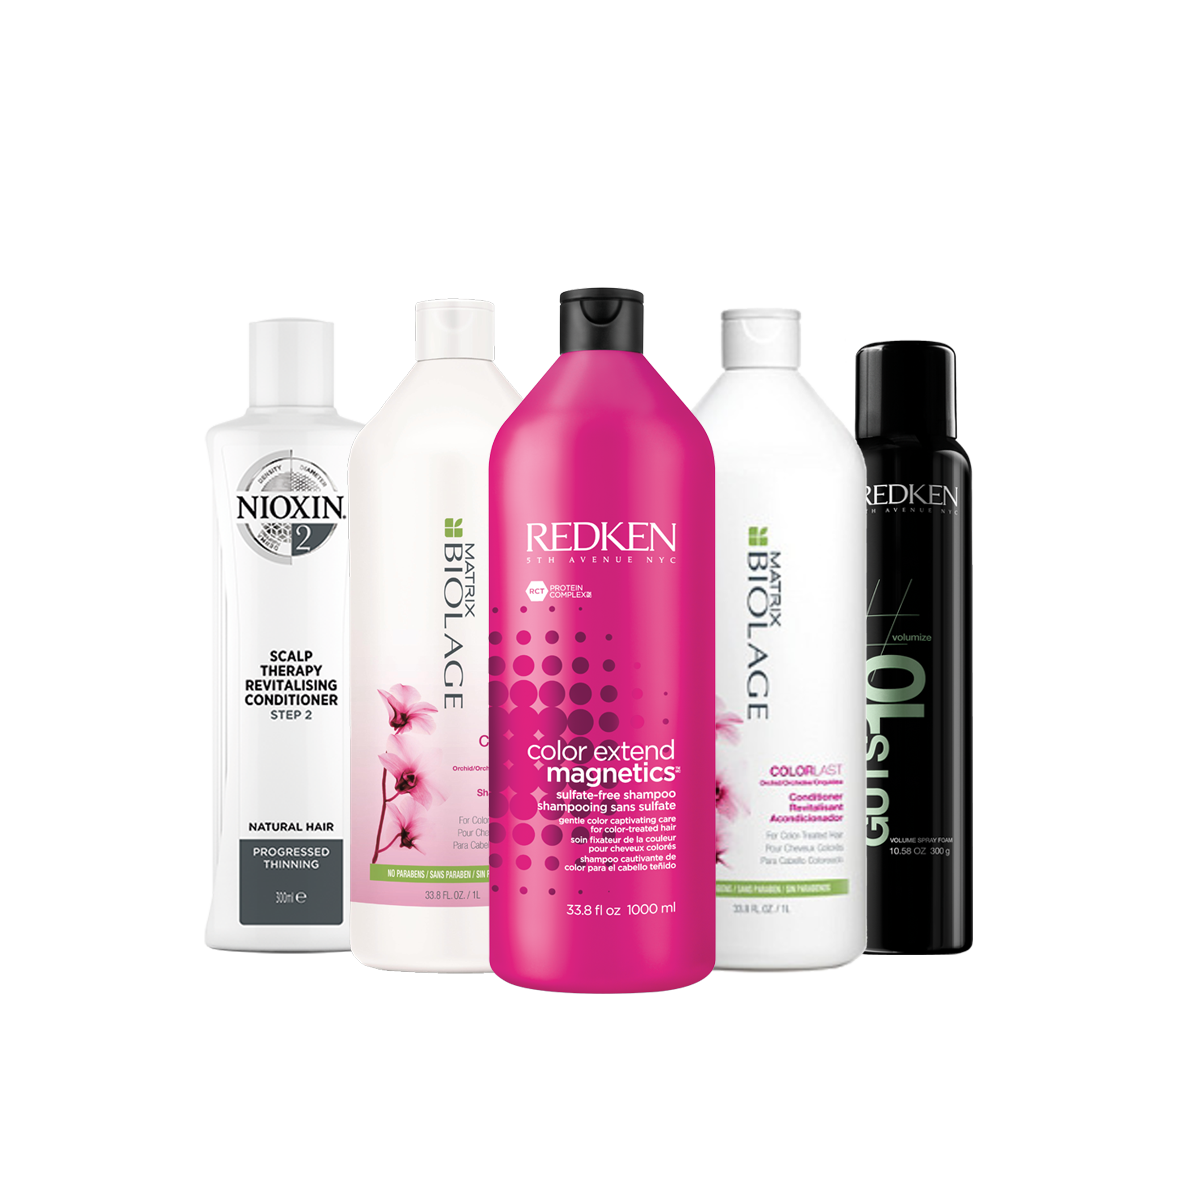 tea tree, nioxin, redken, matrix, biolage products